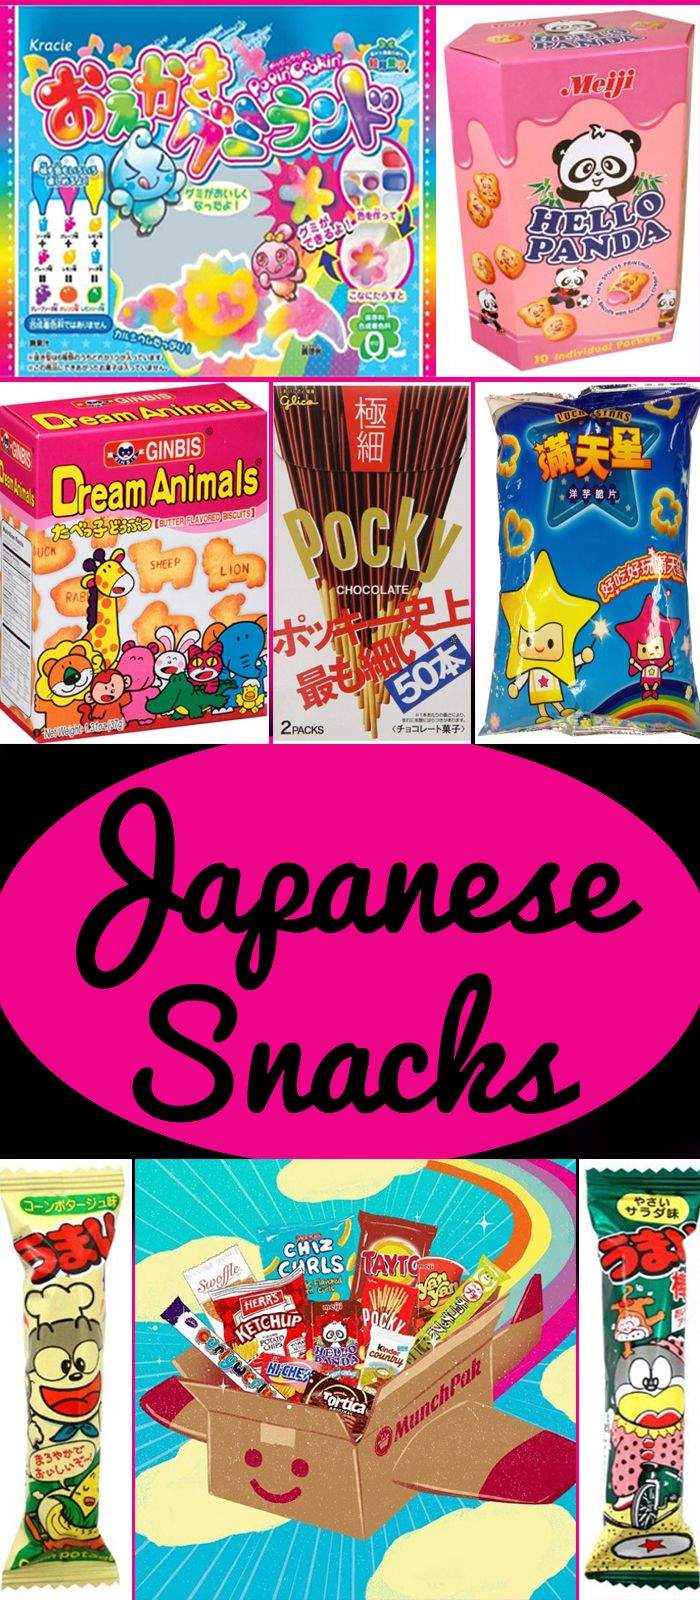 Japan continues to bring fun and exciting flavors to MunchPak! japanese snacks, japanese candy, japanese snack box, japanese snack boxes, japanese candy boxes, japanese subscription box, Meiji Hello Panda, Ginbis Dream Animals, Pocky, Kracie Popin' Cookin, Lucky Stars Potato Chips, Umaibo